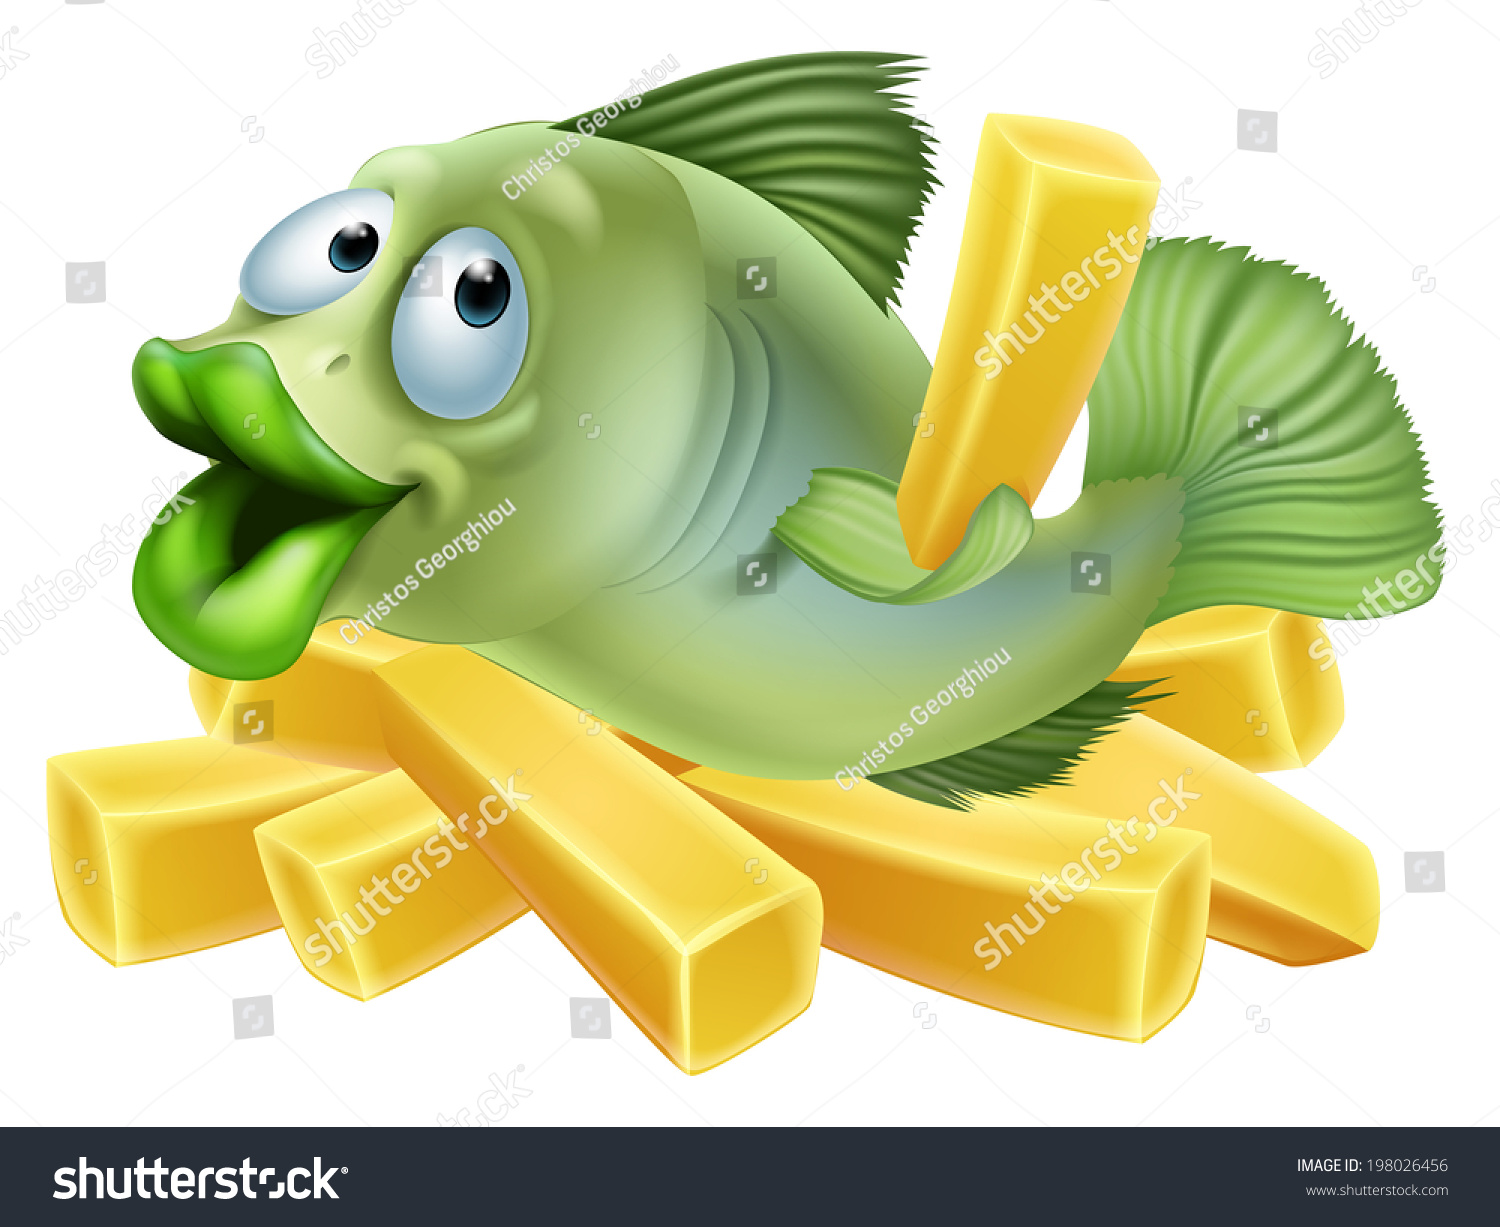 cartoon fish chips seafood concept stock vector 2018 198026456 rh shutterstock com fish and chips cartoon wiki fish and chips cartoon movie